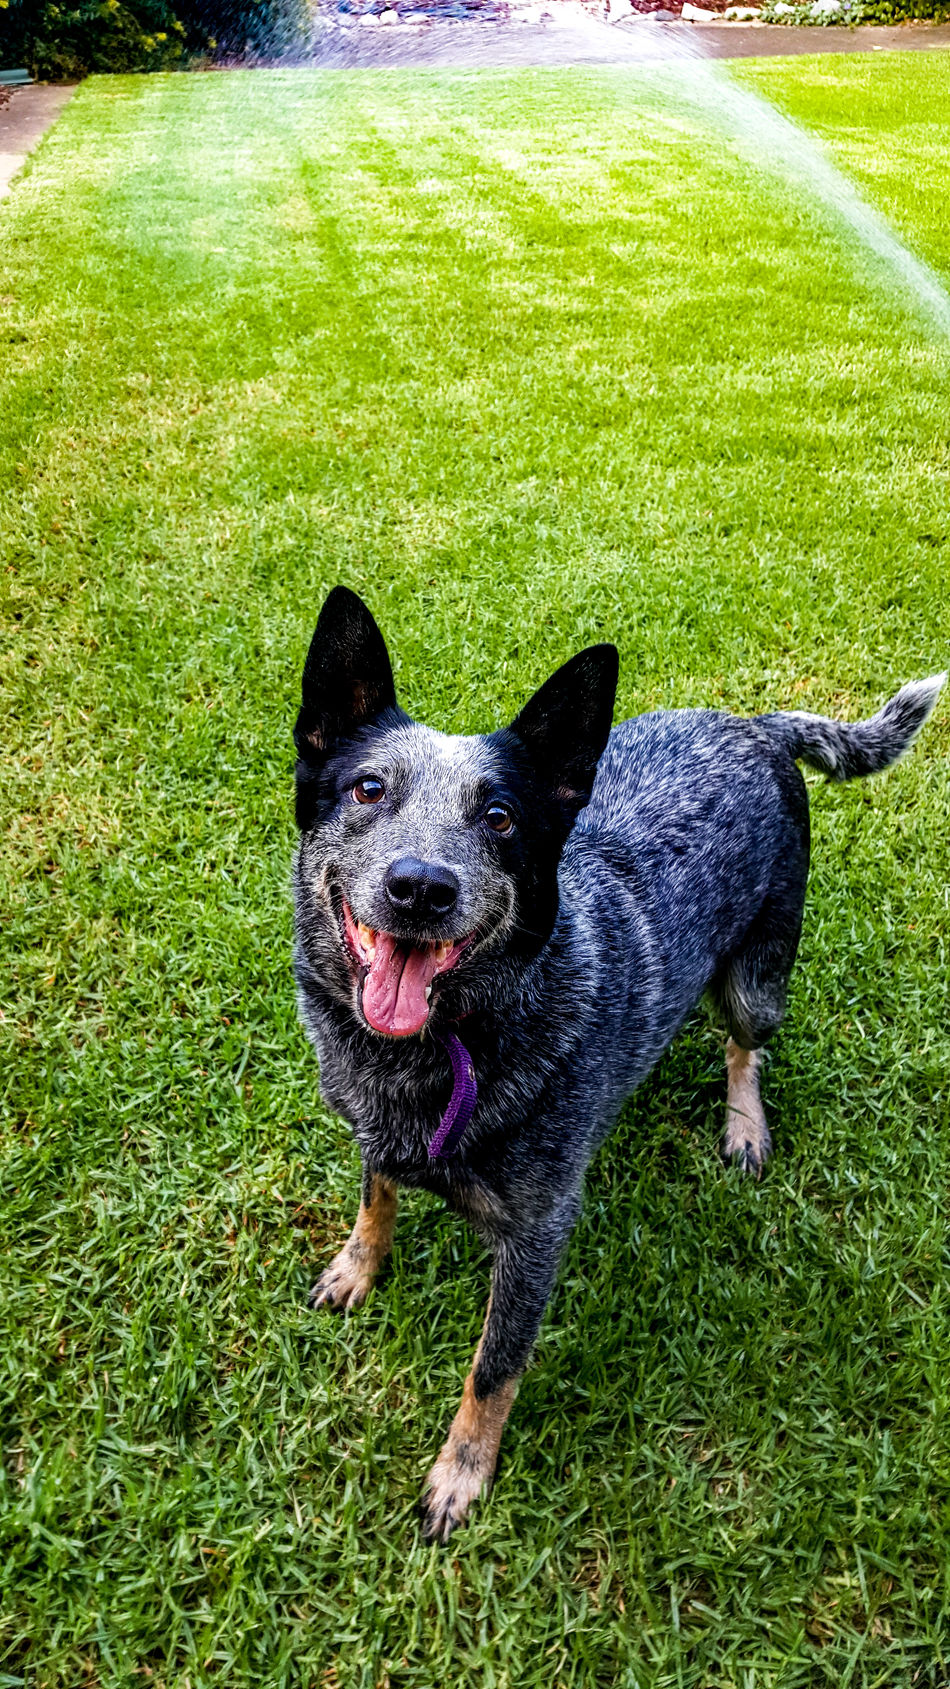 Pets Animal Themes One Animal Dog Domestic Animals Mammal Grass Looking At Camera No People Outdoors Nature Day Happy Smile Puppy Doggy Cattledog Heeler Blue Heeler Blue Heelers Happiness